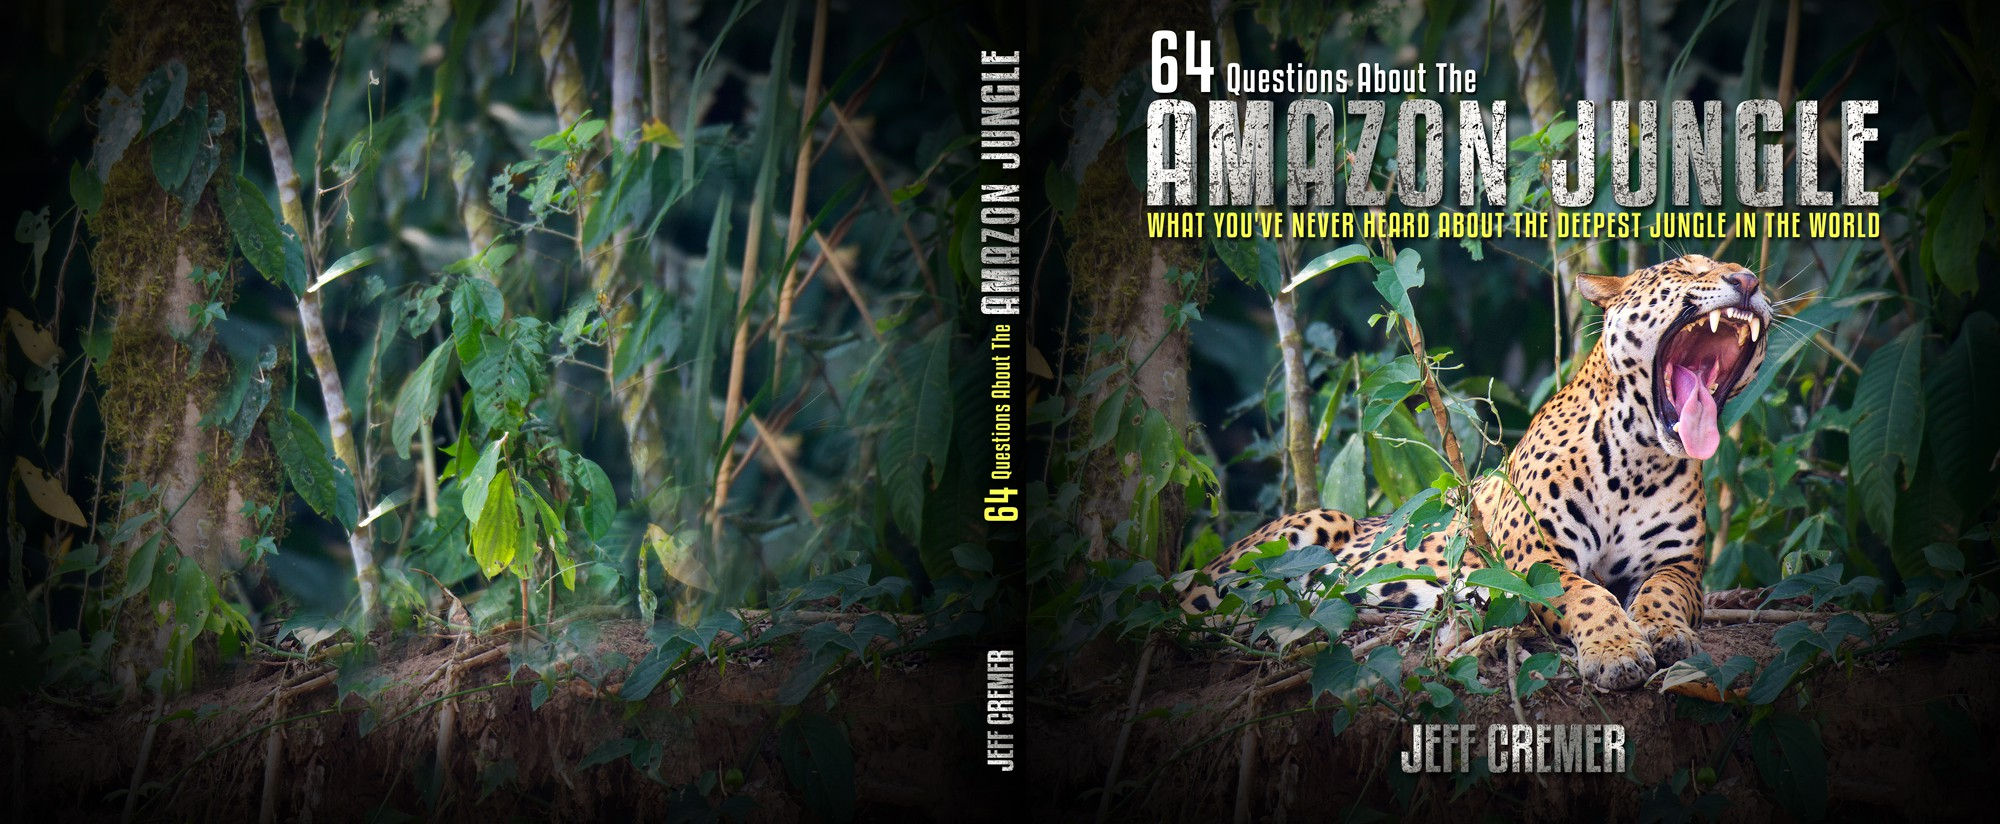 Book Cover Design For A Photography Book About The Amazon Jungle